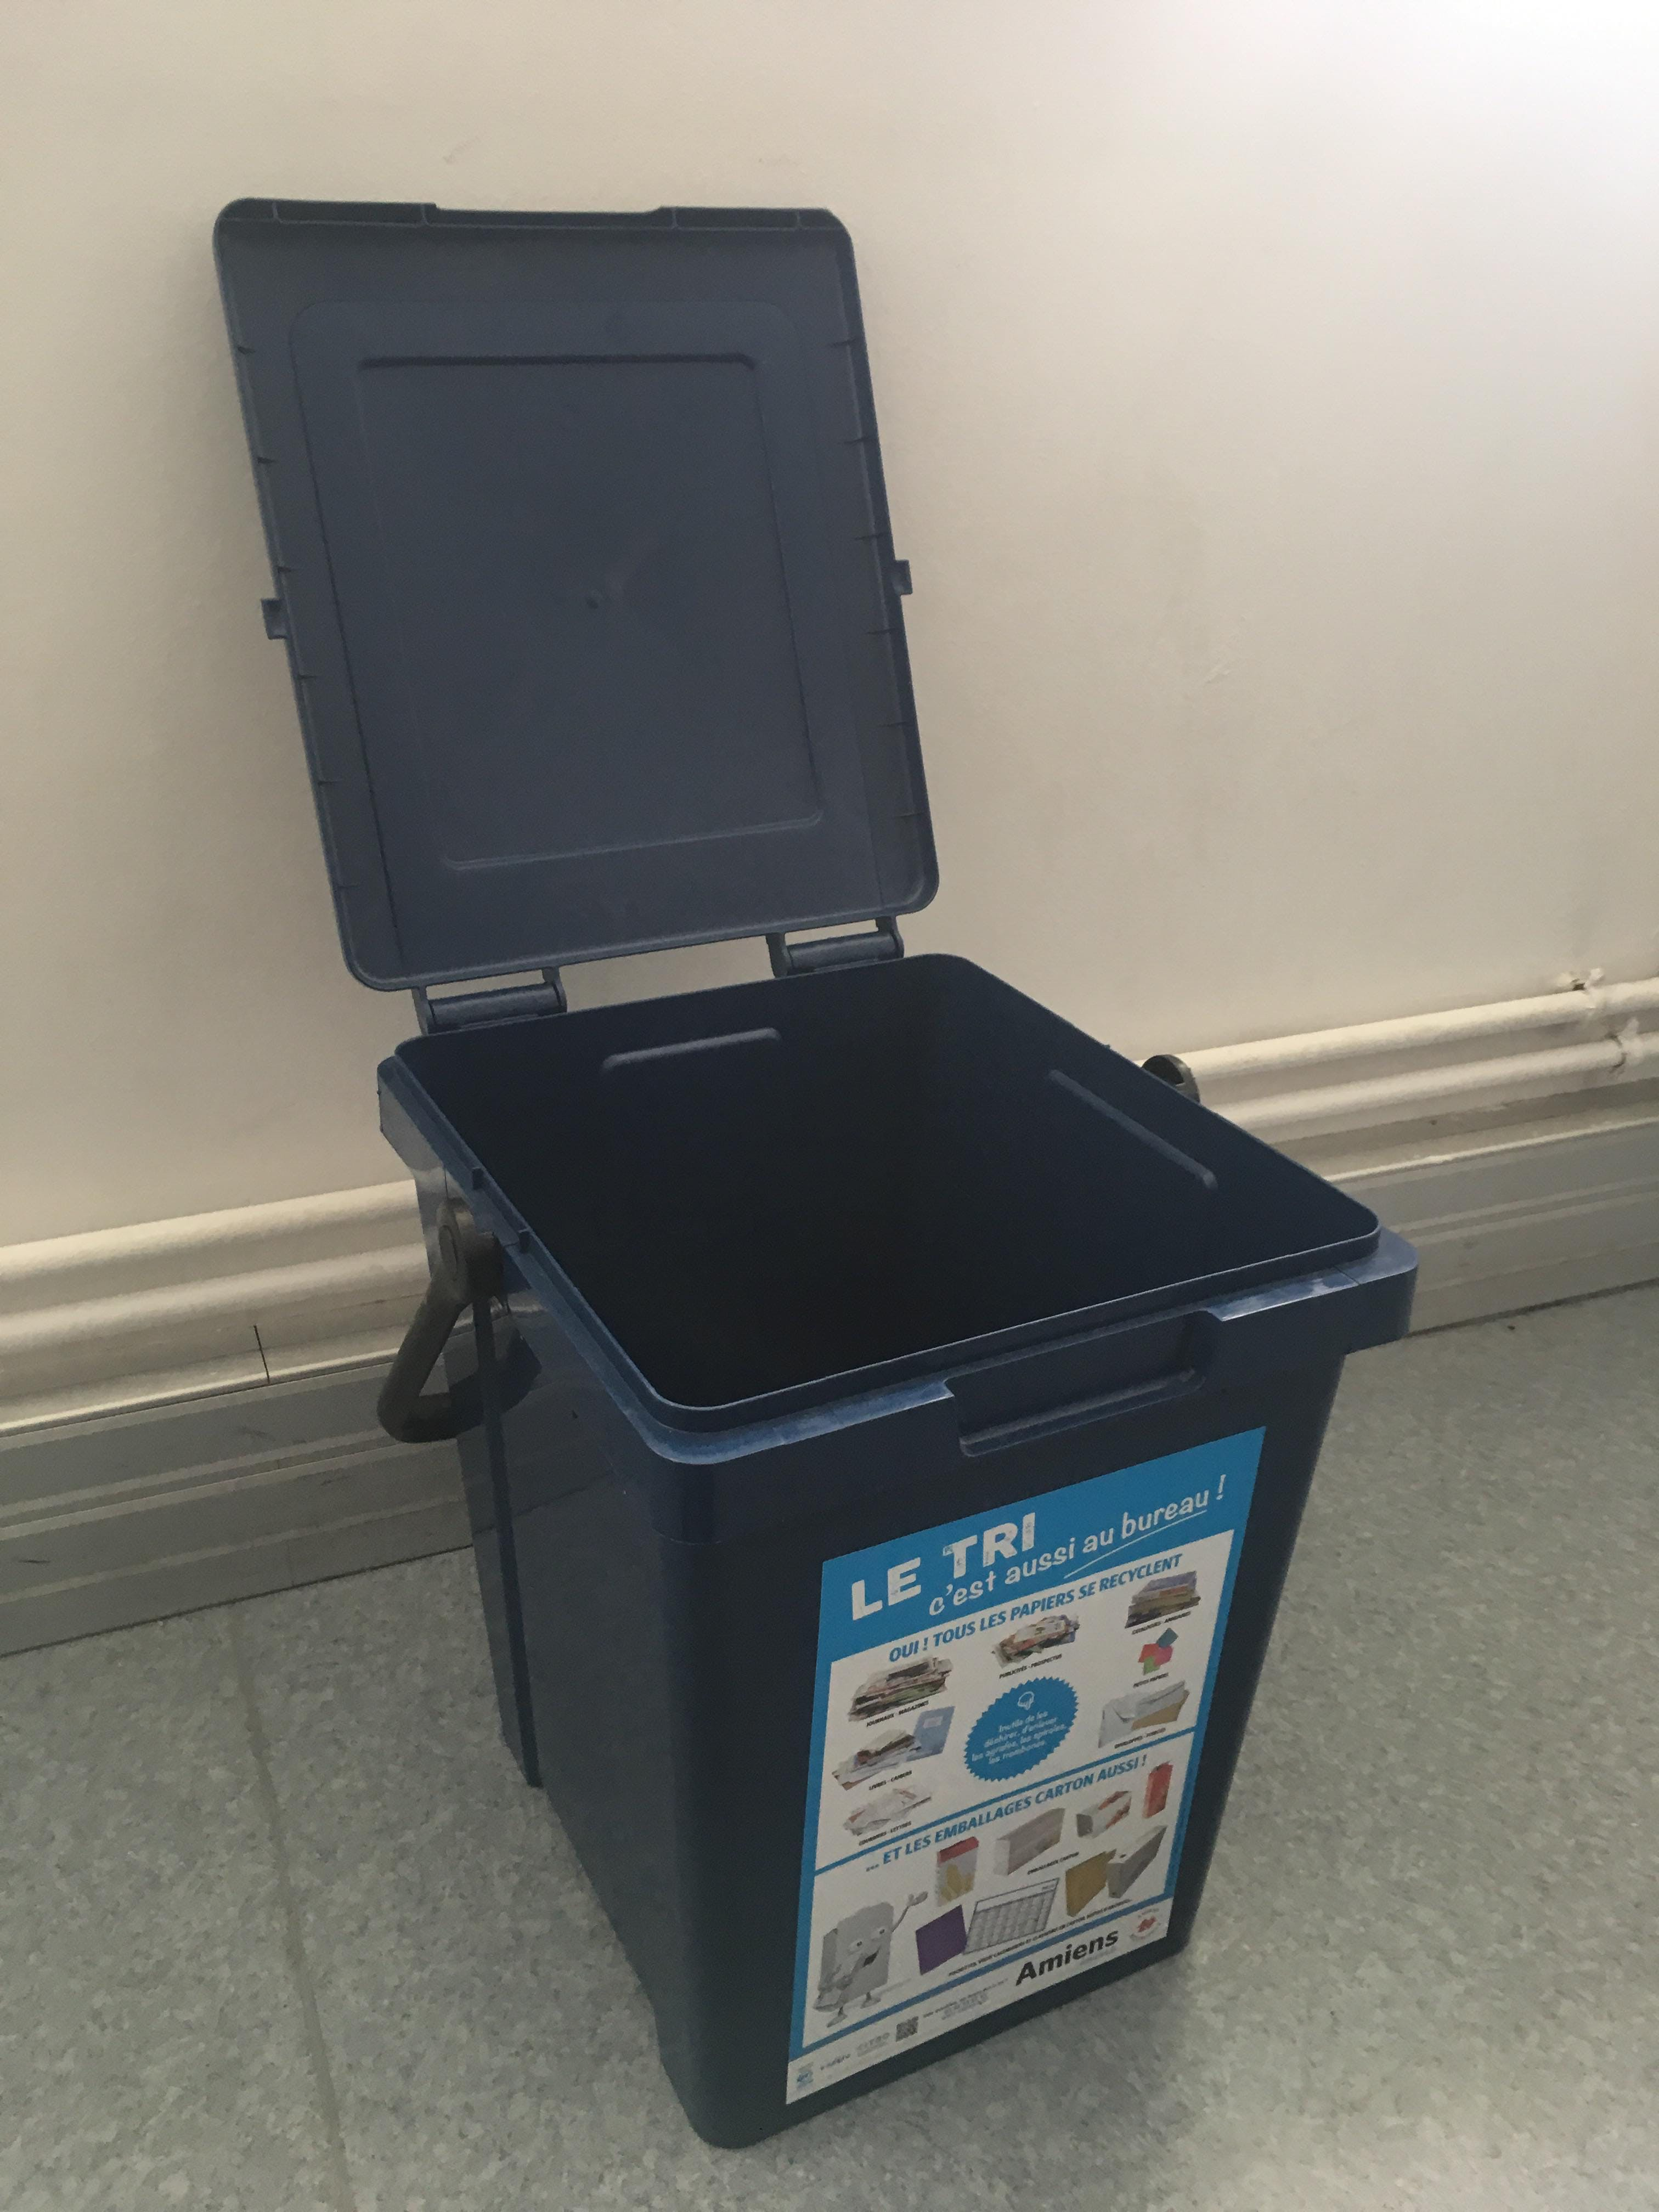 The Bin that we use to test with device.